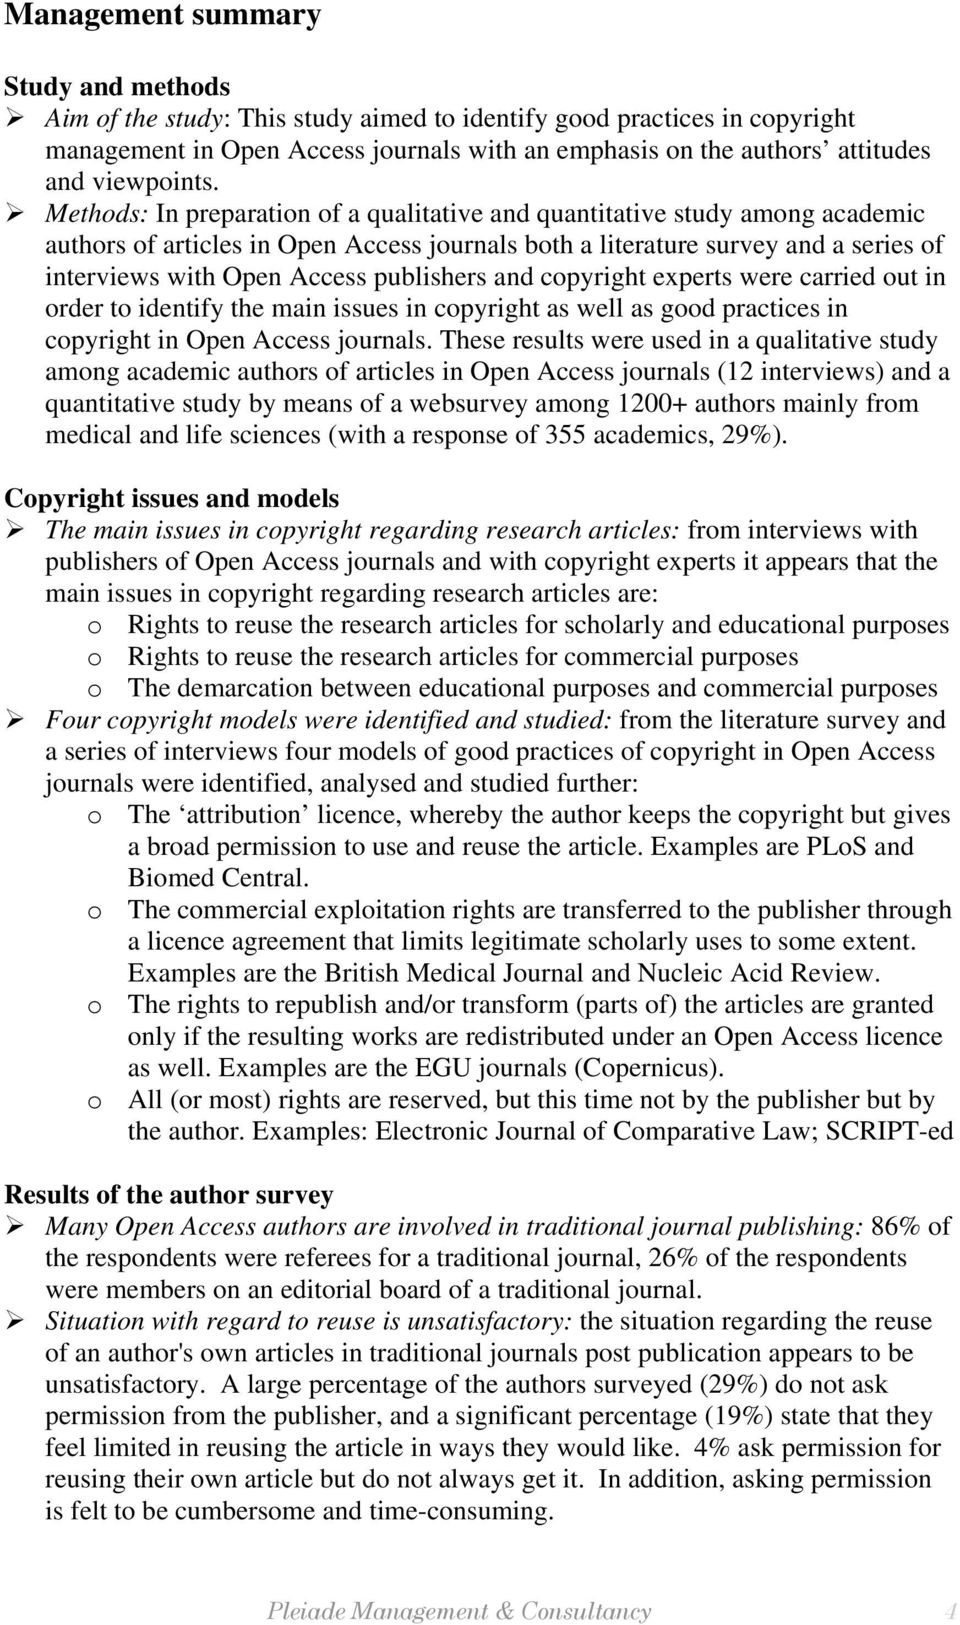 Methods: In preparation of a qualitative and quantitative study among academic authors of articles in Open Access journals both a literature survey and a series of interviews with Open Access